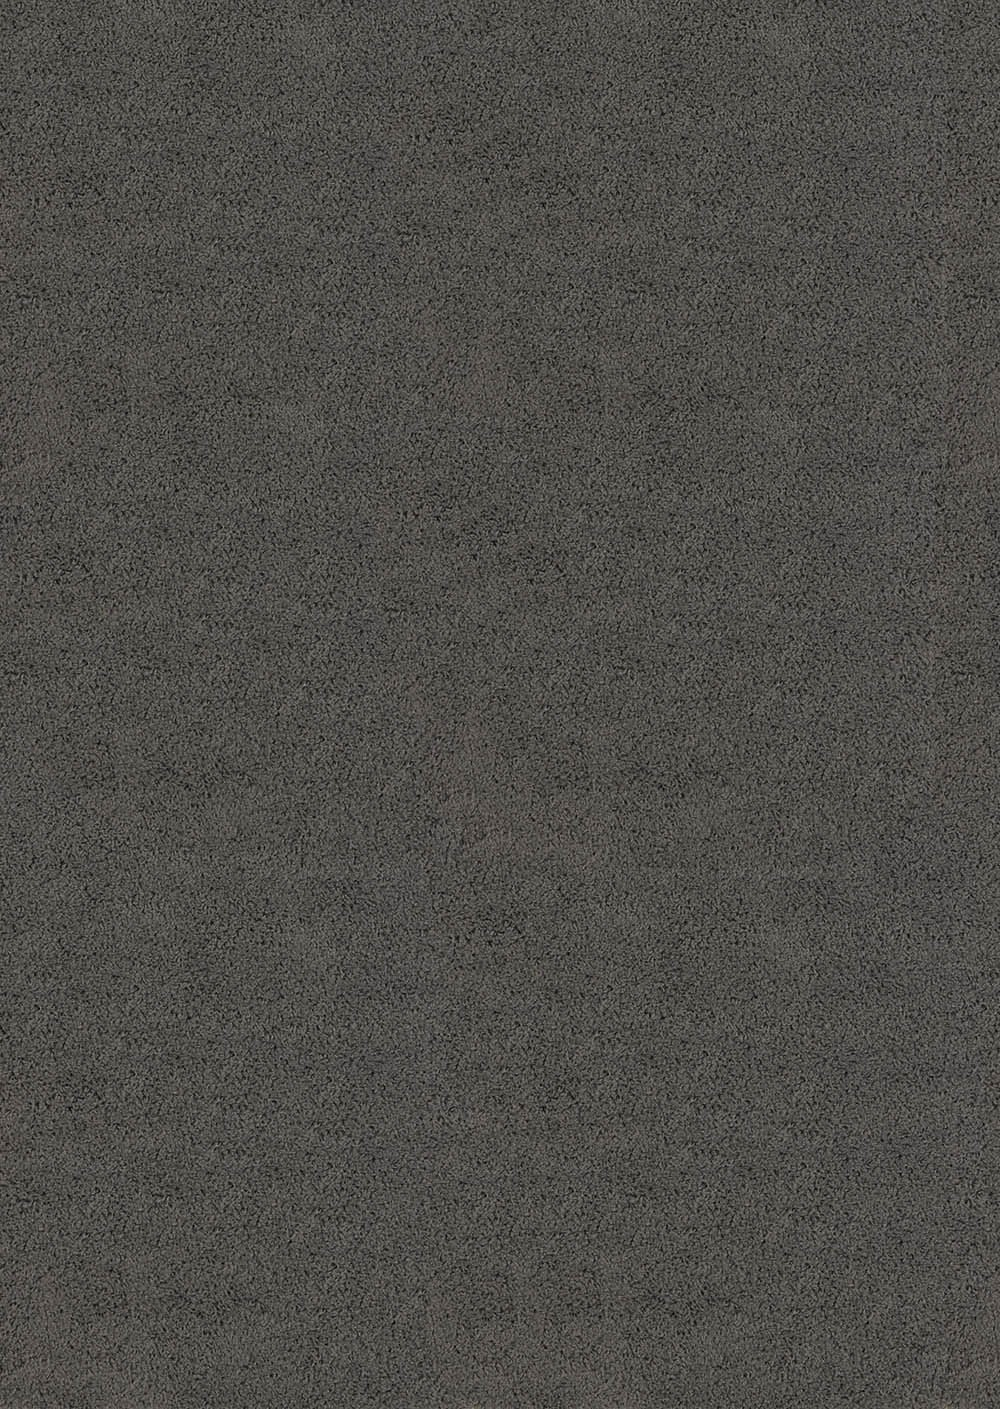 "Brushstrokes Grey Area Rug (63"" X 86"") - Solid Color Area Rugs"